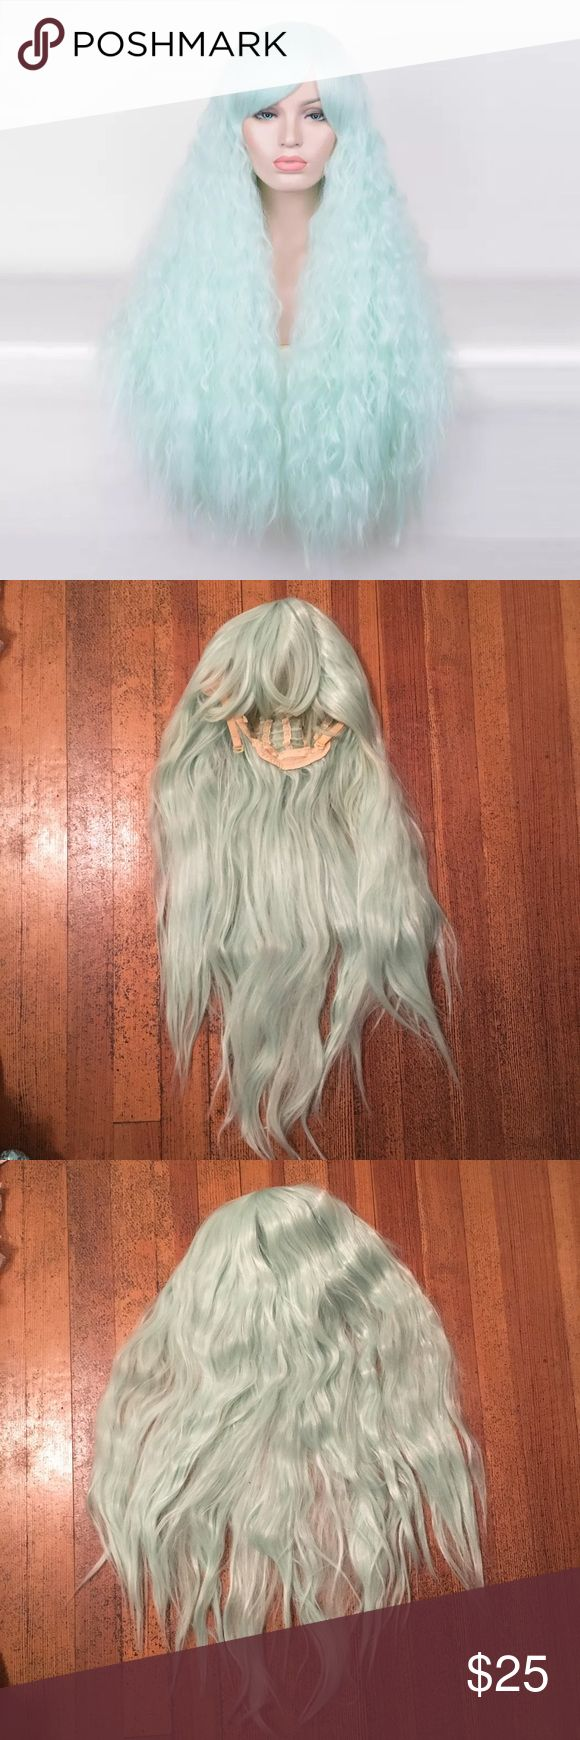 Mint Rhapsody Fluffy Cosplay Lolita Wig Gently used mint colored synthetic rhapsody wig! This wig was only worn twice and is still in great condition. The ends could use a brushing but the wig is not tangled or matted looking at all! It's very soft and fluffy. Not shiny at all, looks realistic! Mint green in color. Unbranded. High quality synthetic. Great for cosplay, sweet lolita coords, pastel goth, Halloween costumes, etc! So versatile! Pair with clothing from brands like Angelic Pretty…